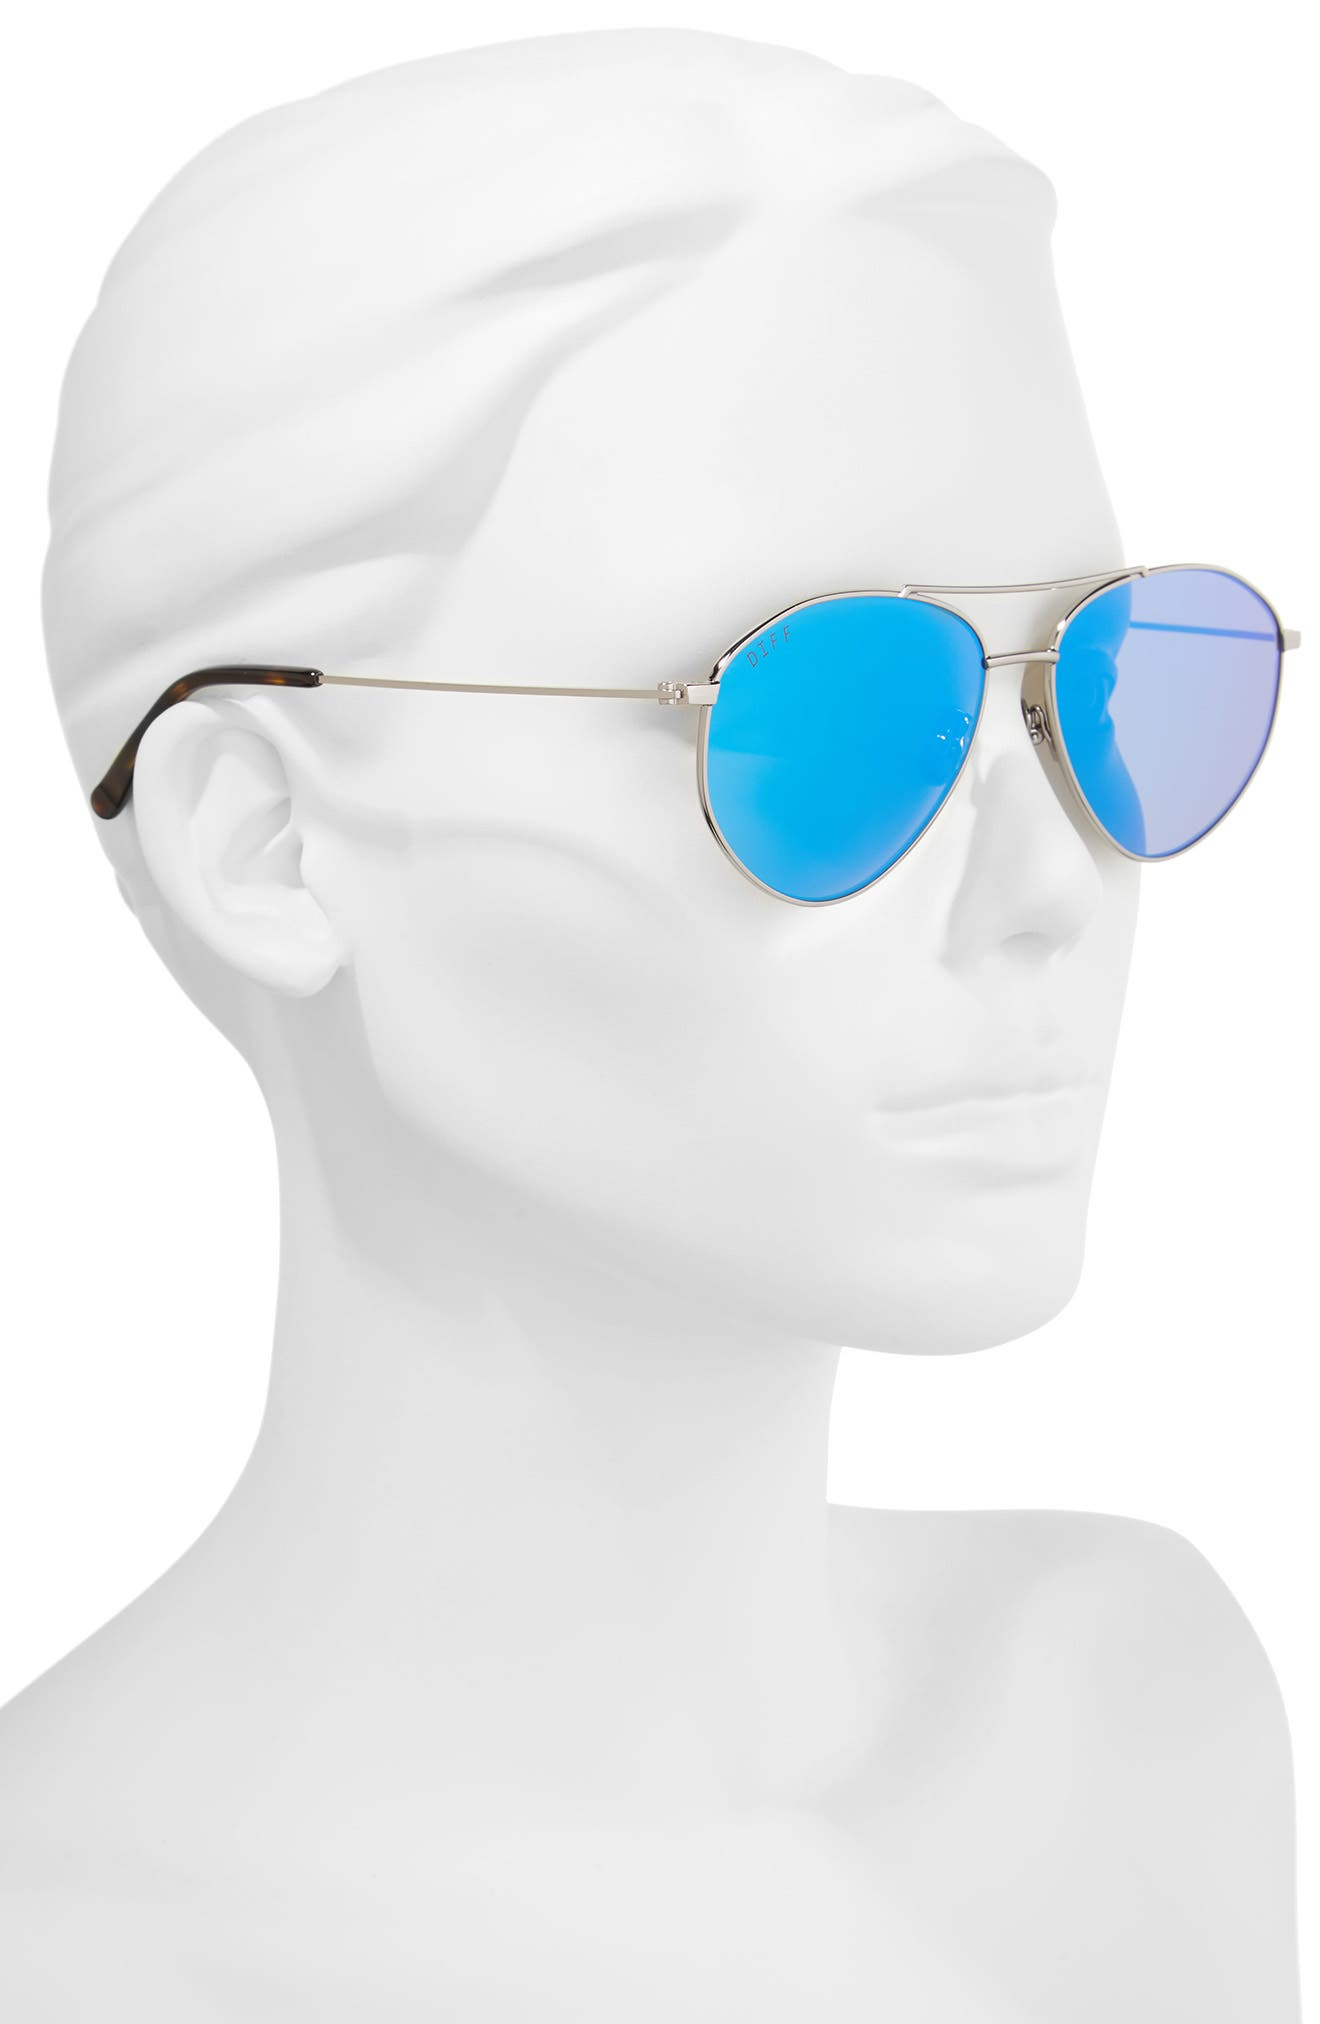 Scout 53mm Aviator Sunglasses,                             Alternate thumbnail 2, color,                             LIGHT GUNMETAL/ ICE BLUE